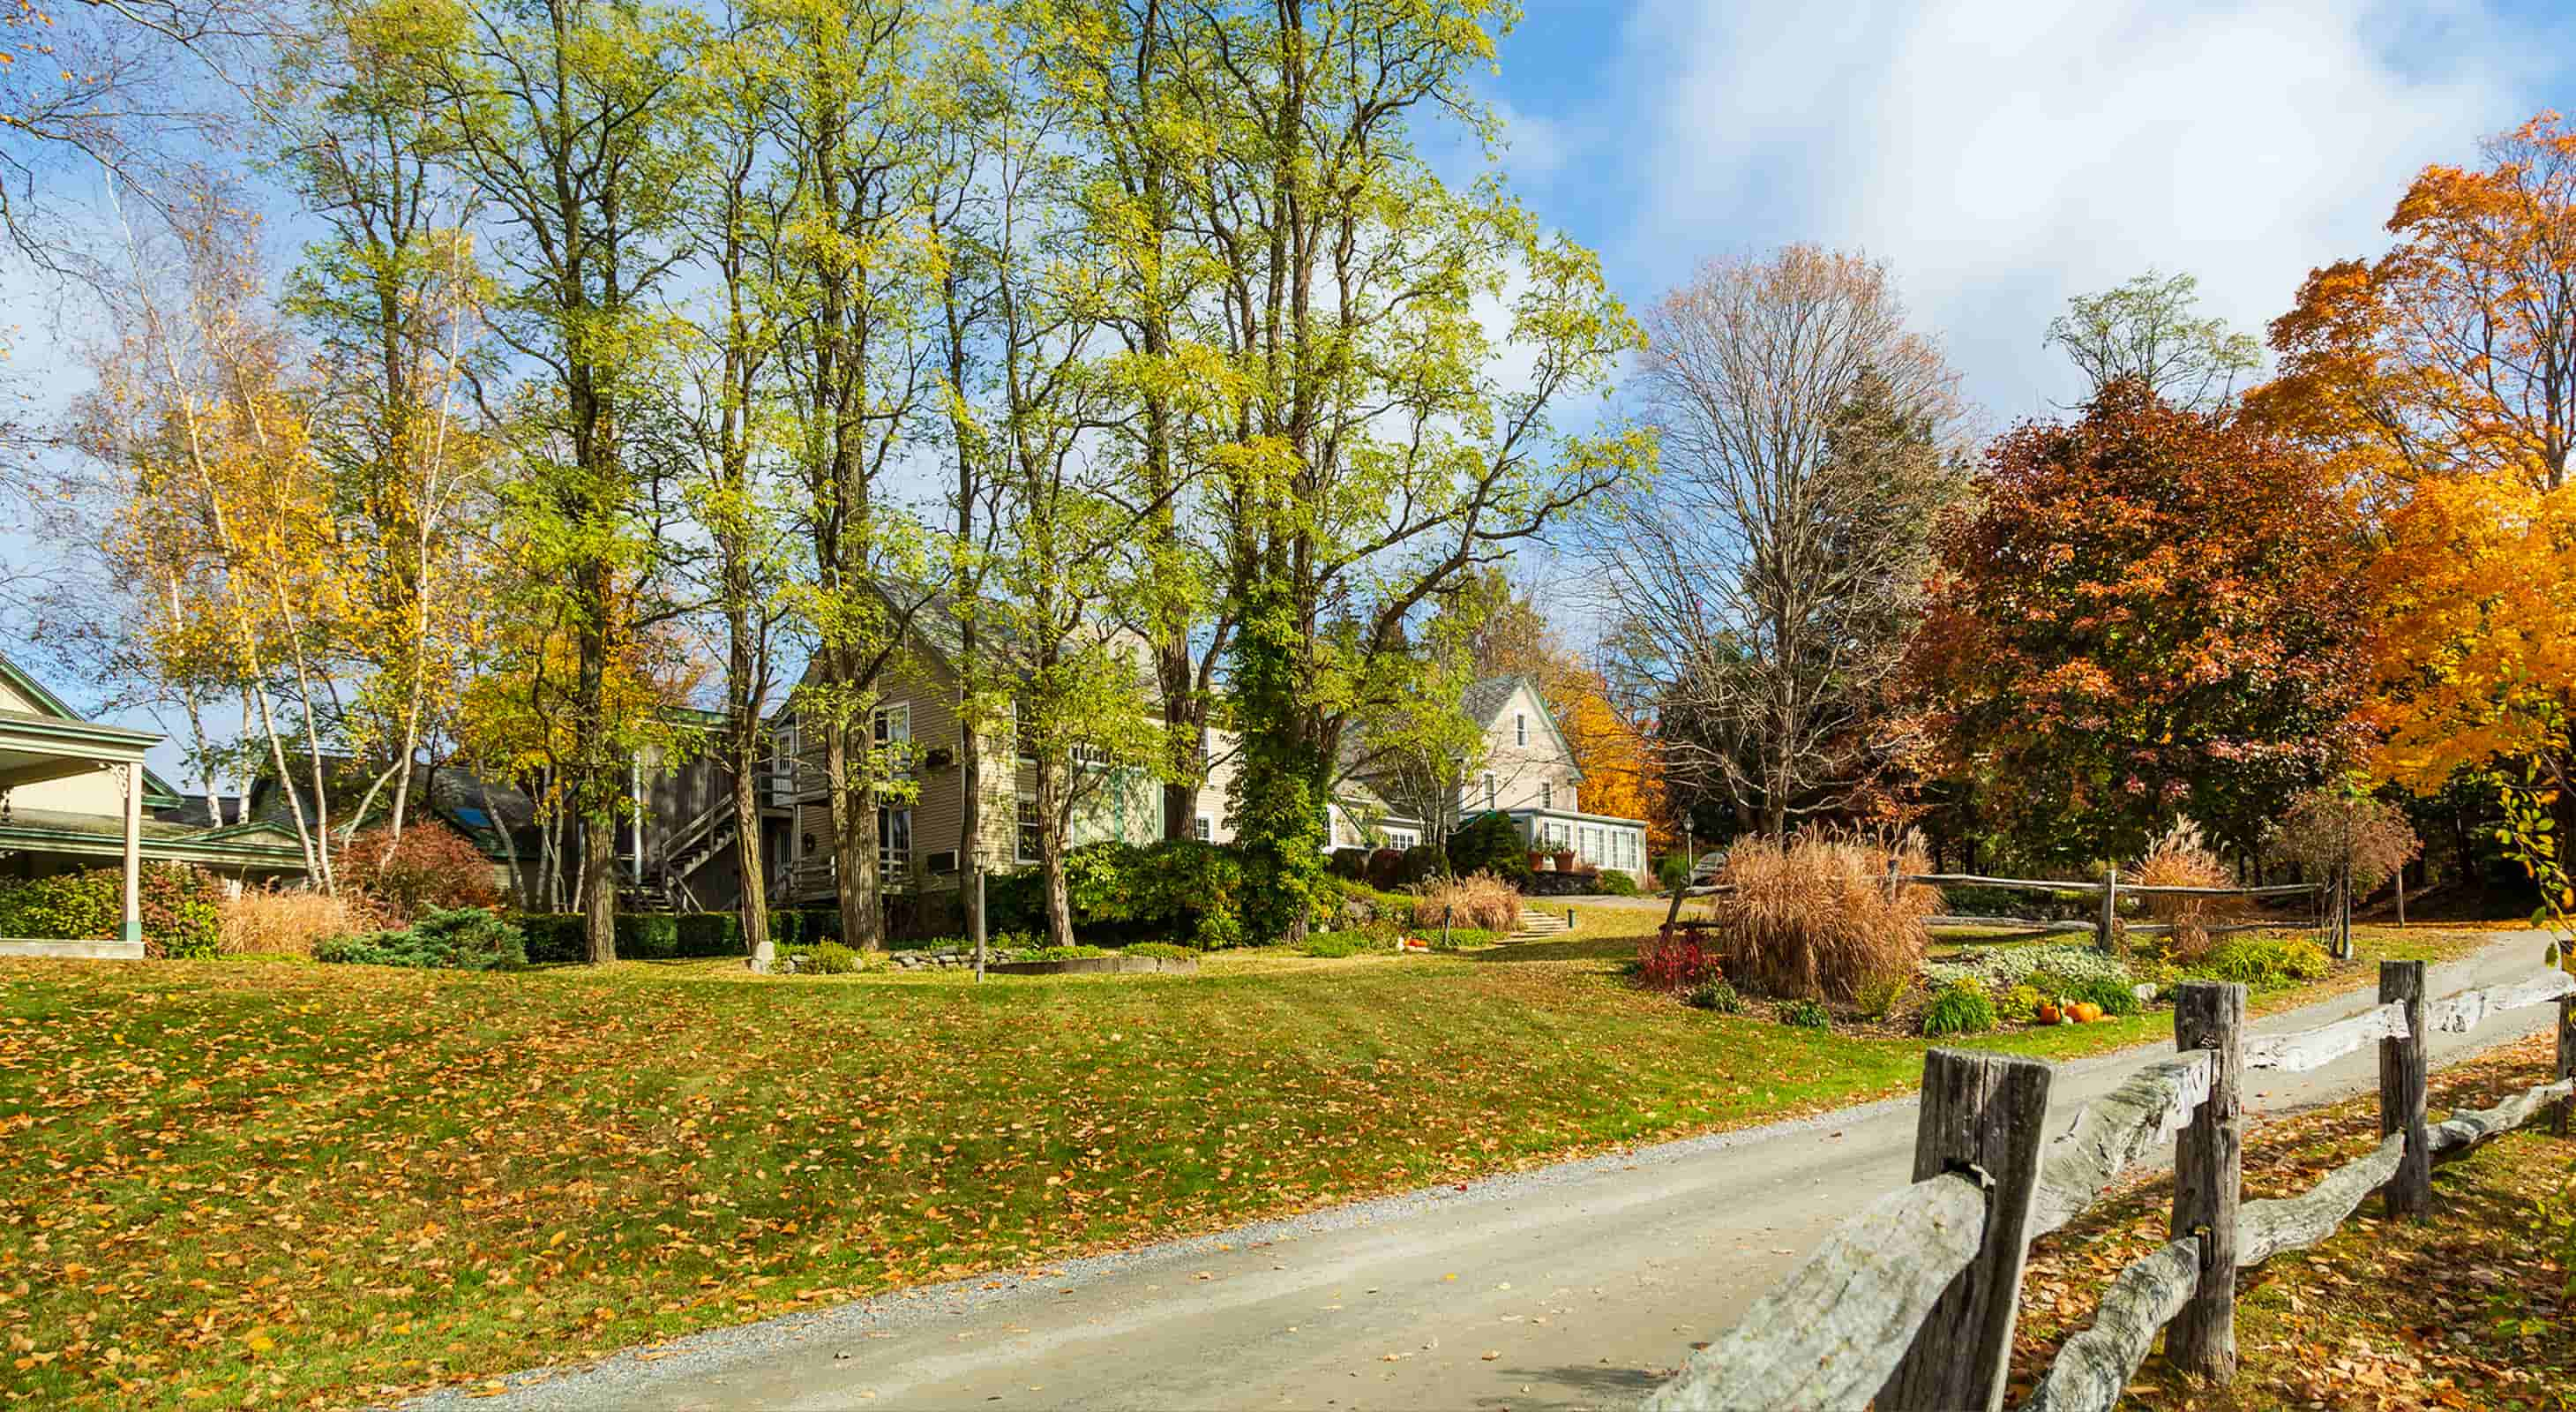 Chesterfield Inn with fall foliage